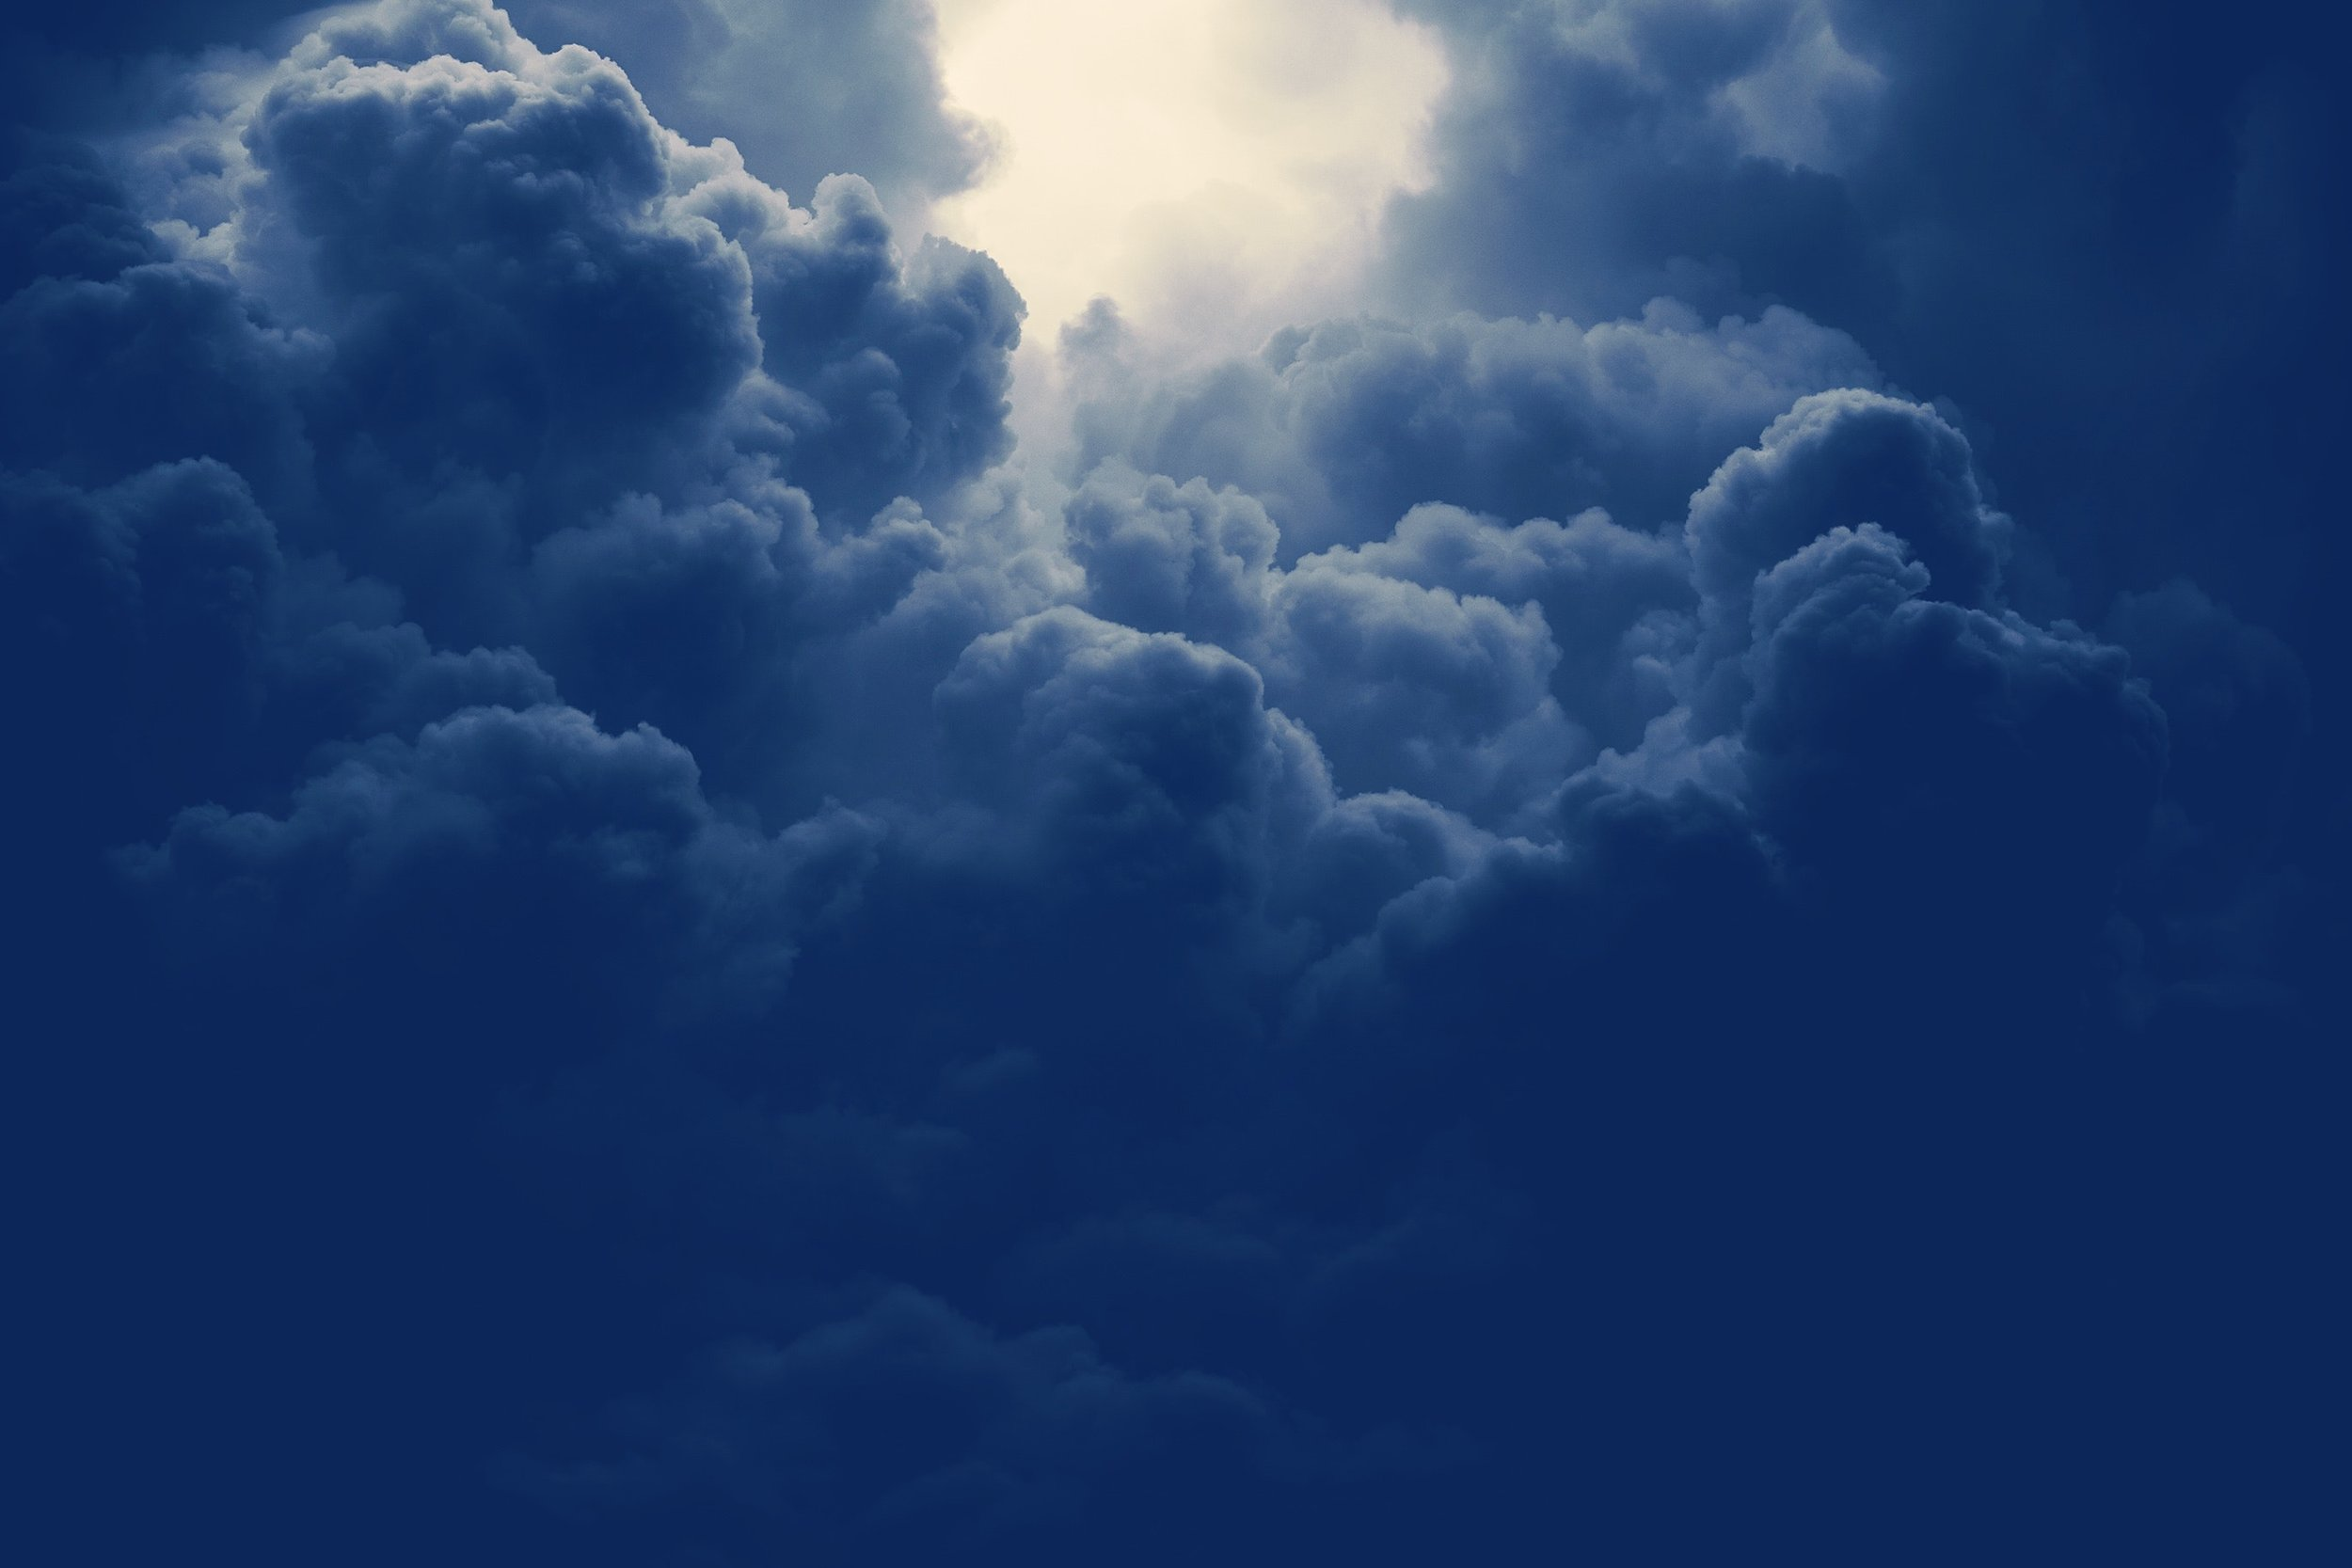 atmosphere-blue-cloud-601798.jpg